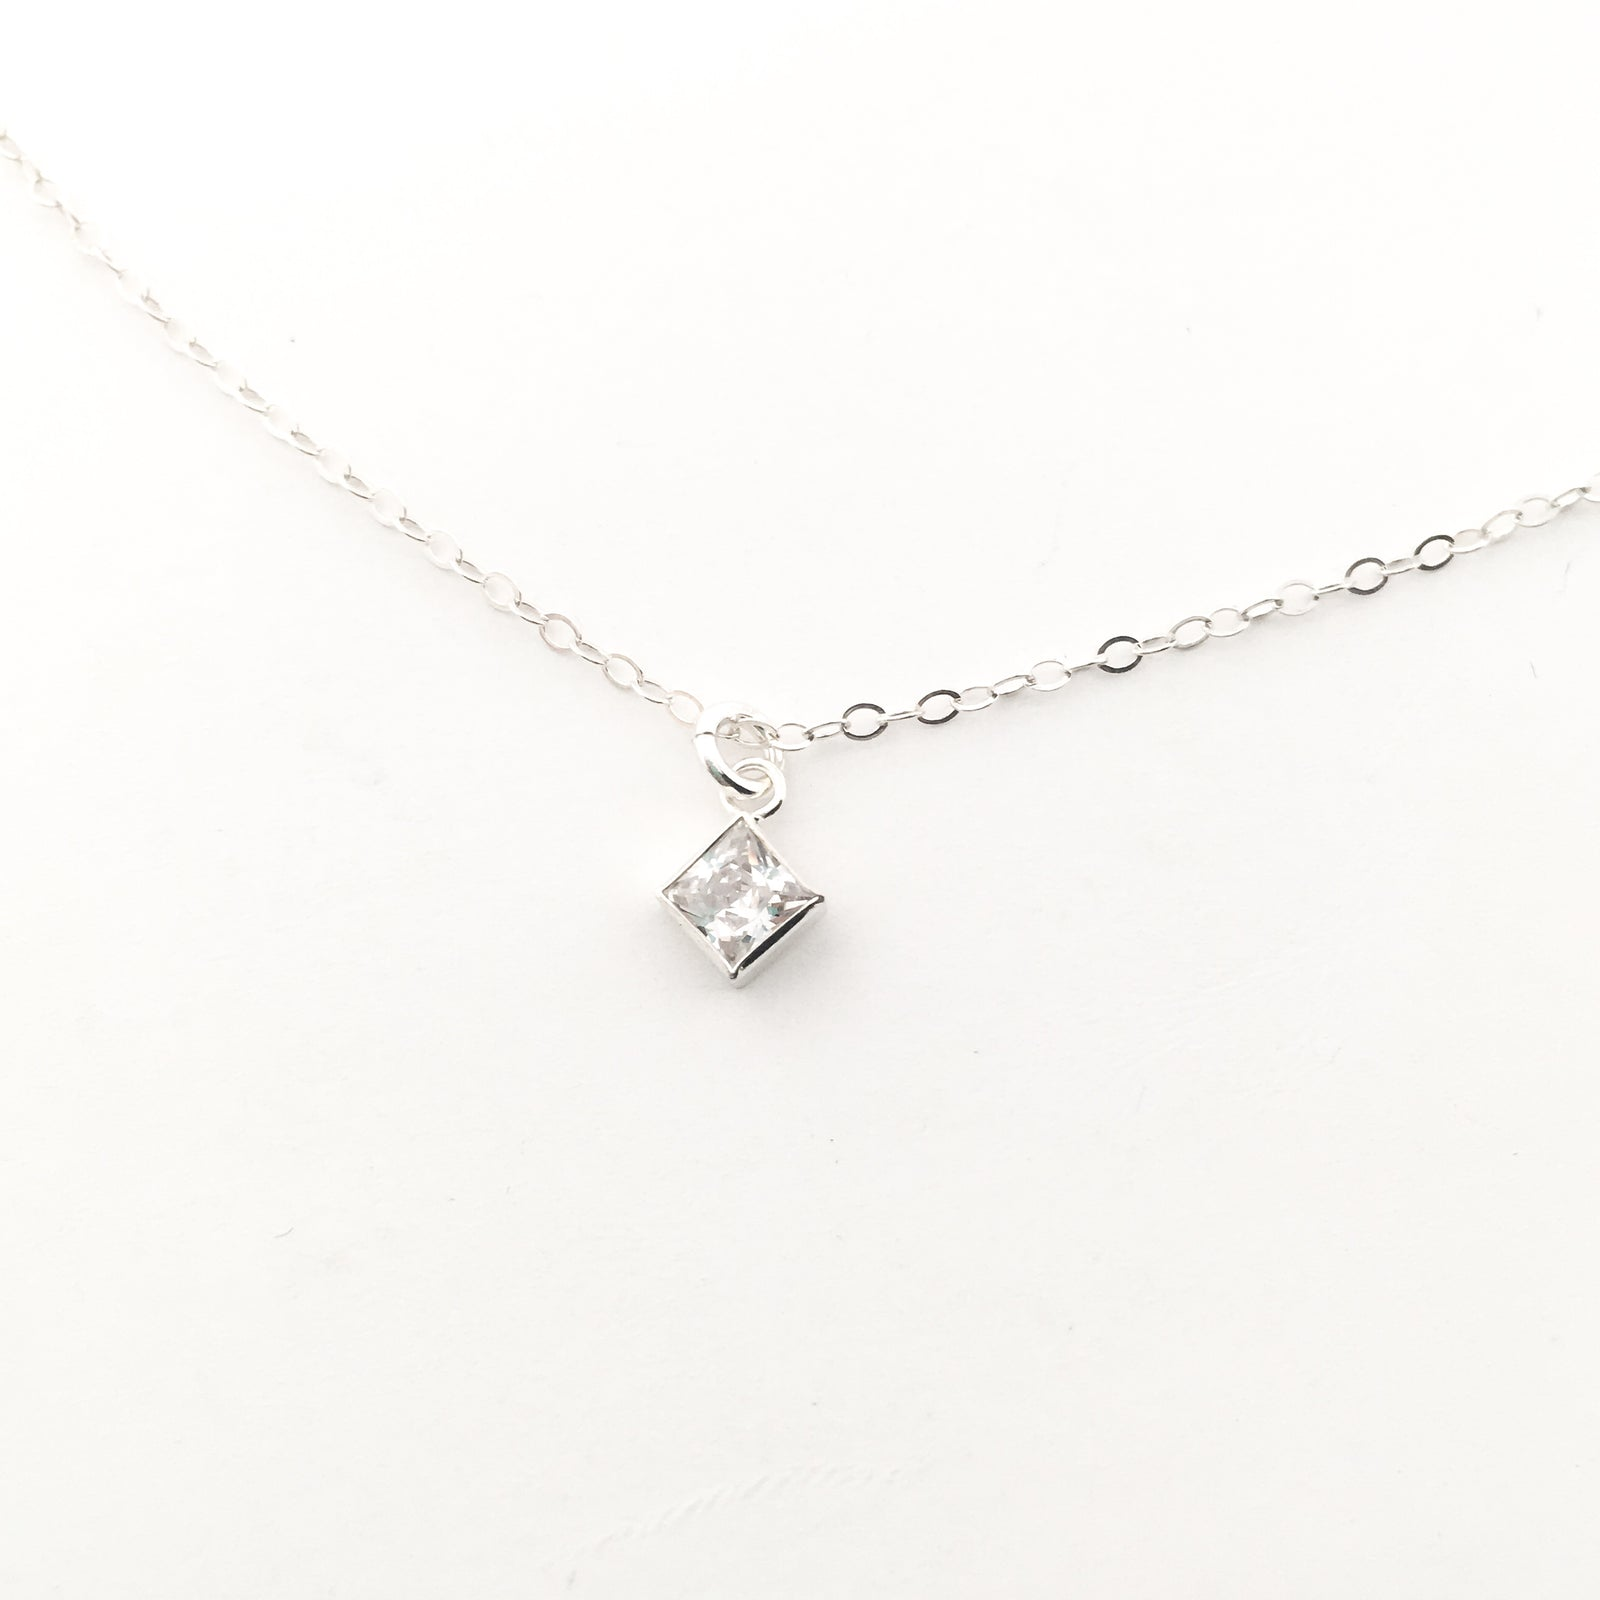 HANGING CUBIC ZIRCONIA NECKLACES | STERLING SILVER | STYLE OPTIONS